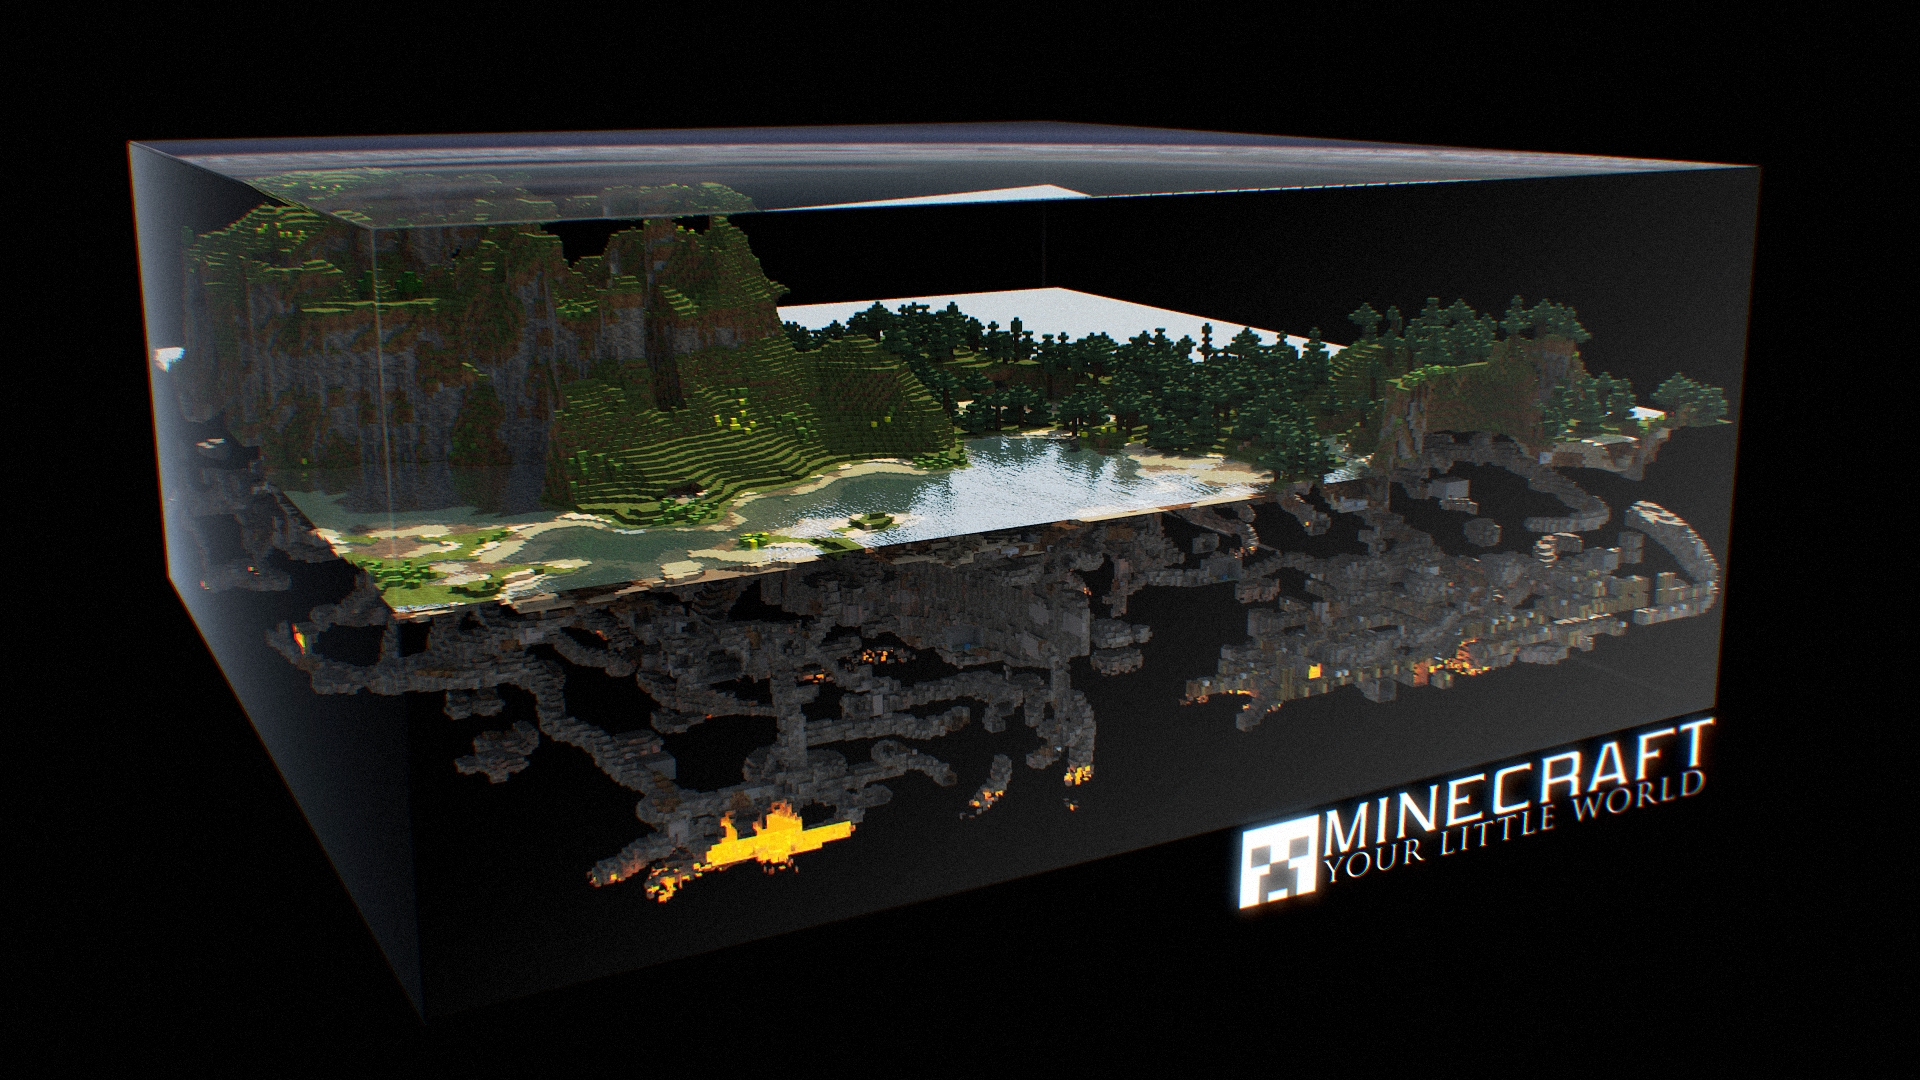 Epic Minecraft Cross Section Wallpaper image   Le Fancy 1920x1080